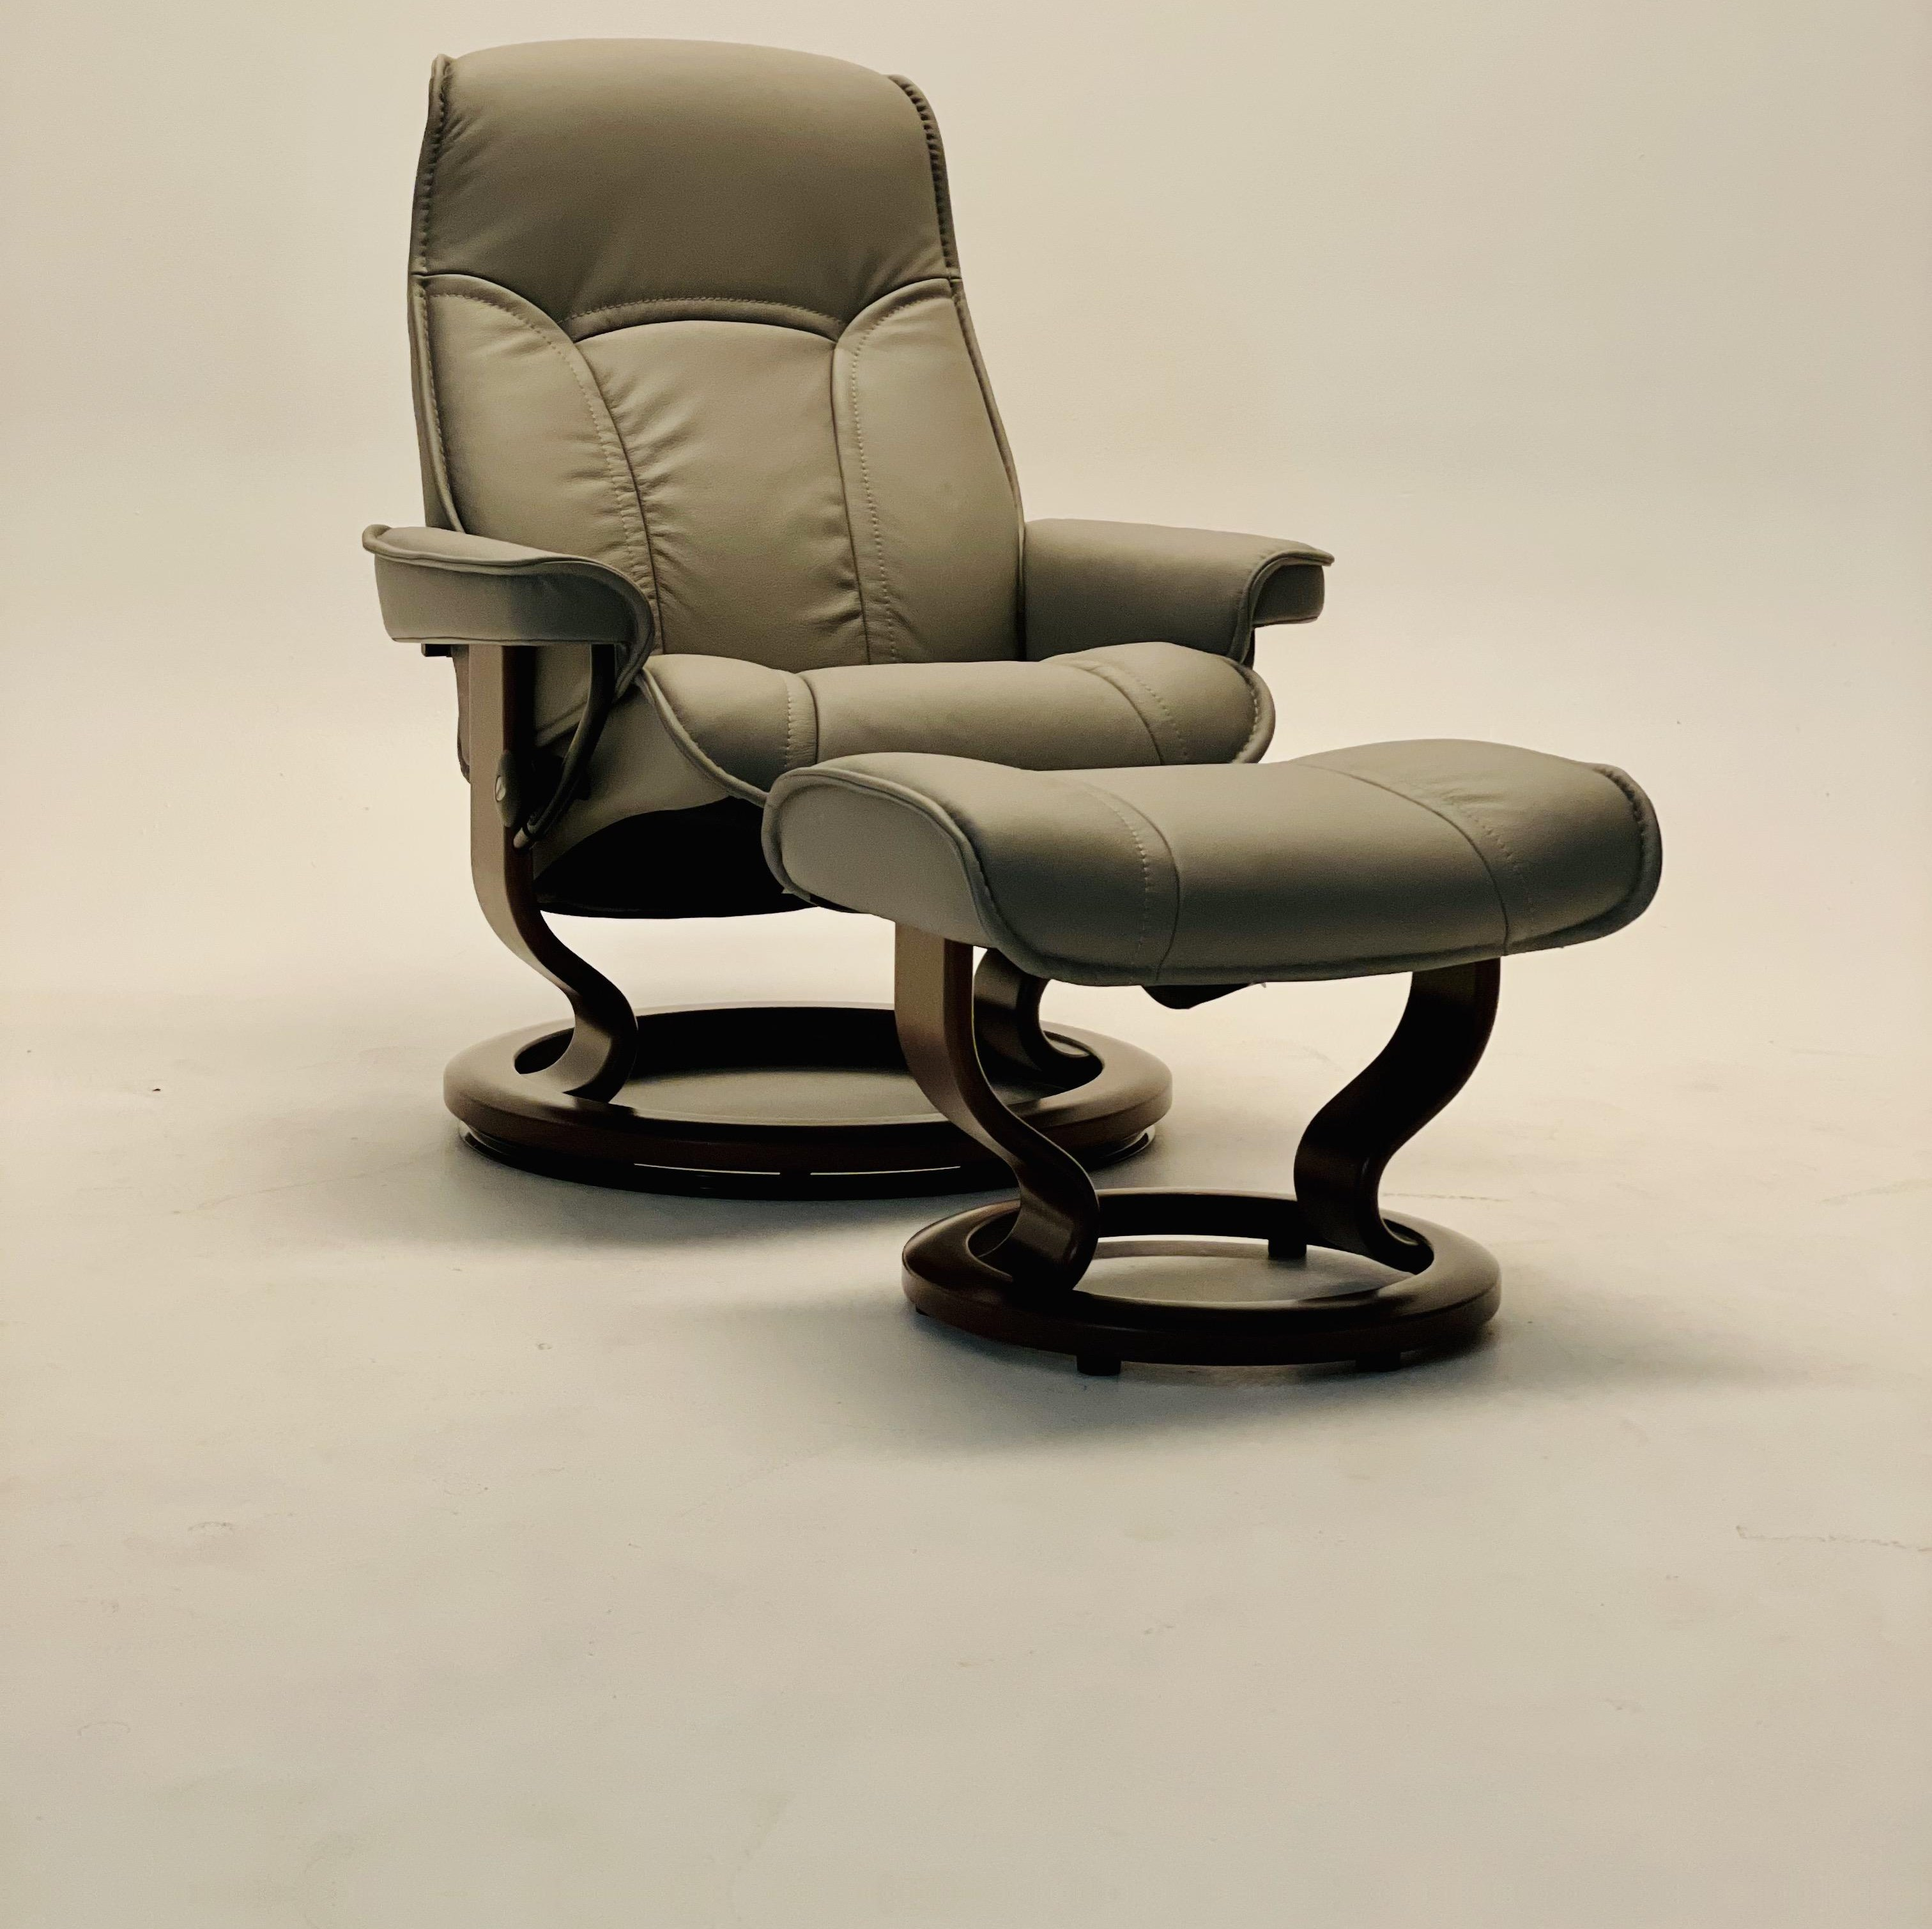 Stressless Senator Large Classic Chair and Ottoman by Stressless at Baer's Furniture